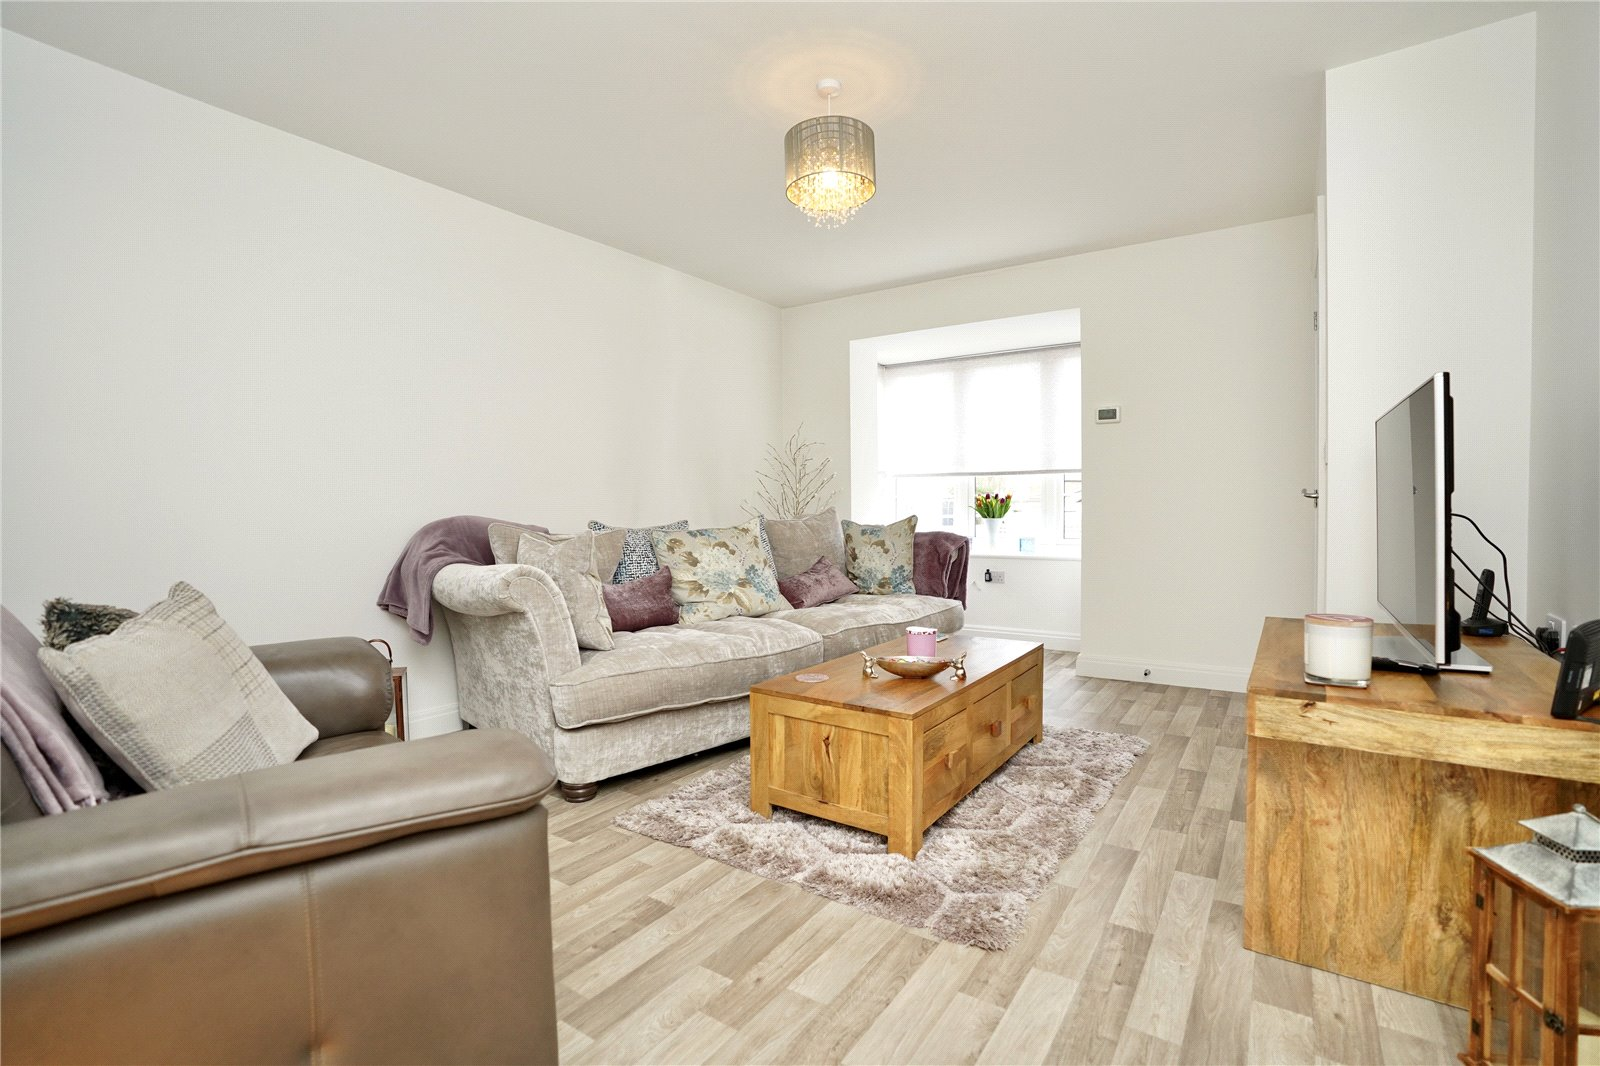 3 bed house for sale in Sawtry, PE28 5ZJ  - Property Image 3